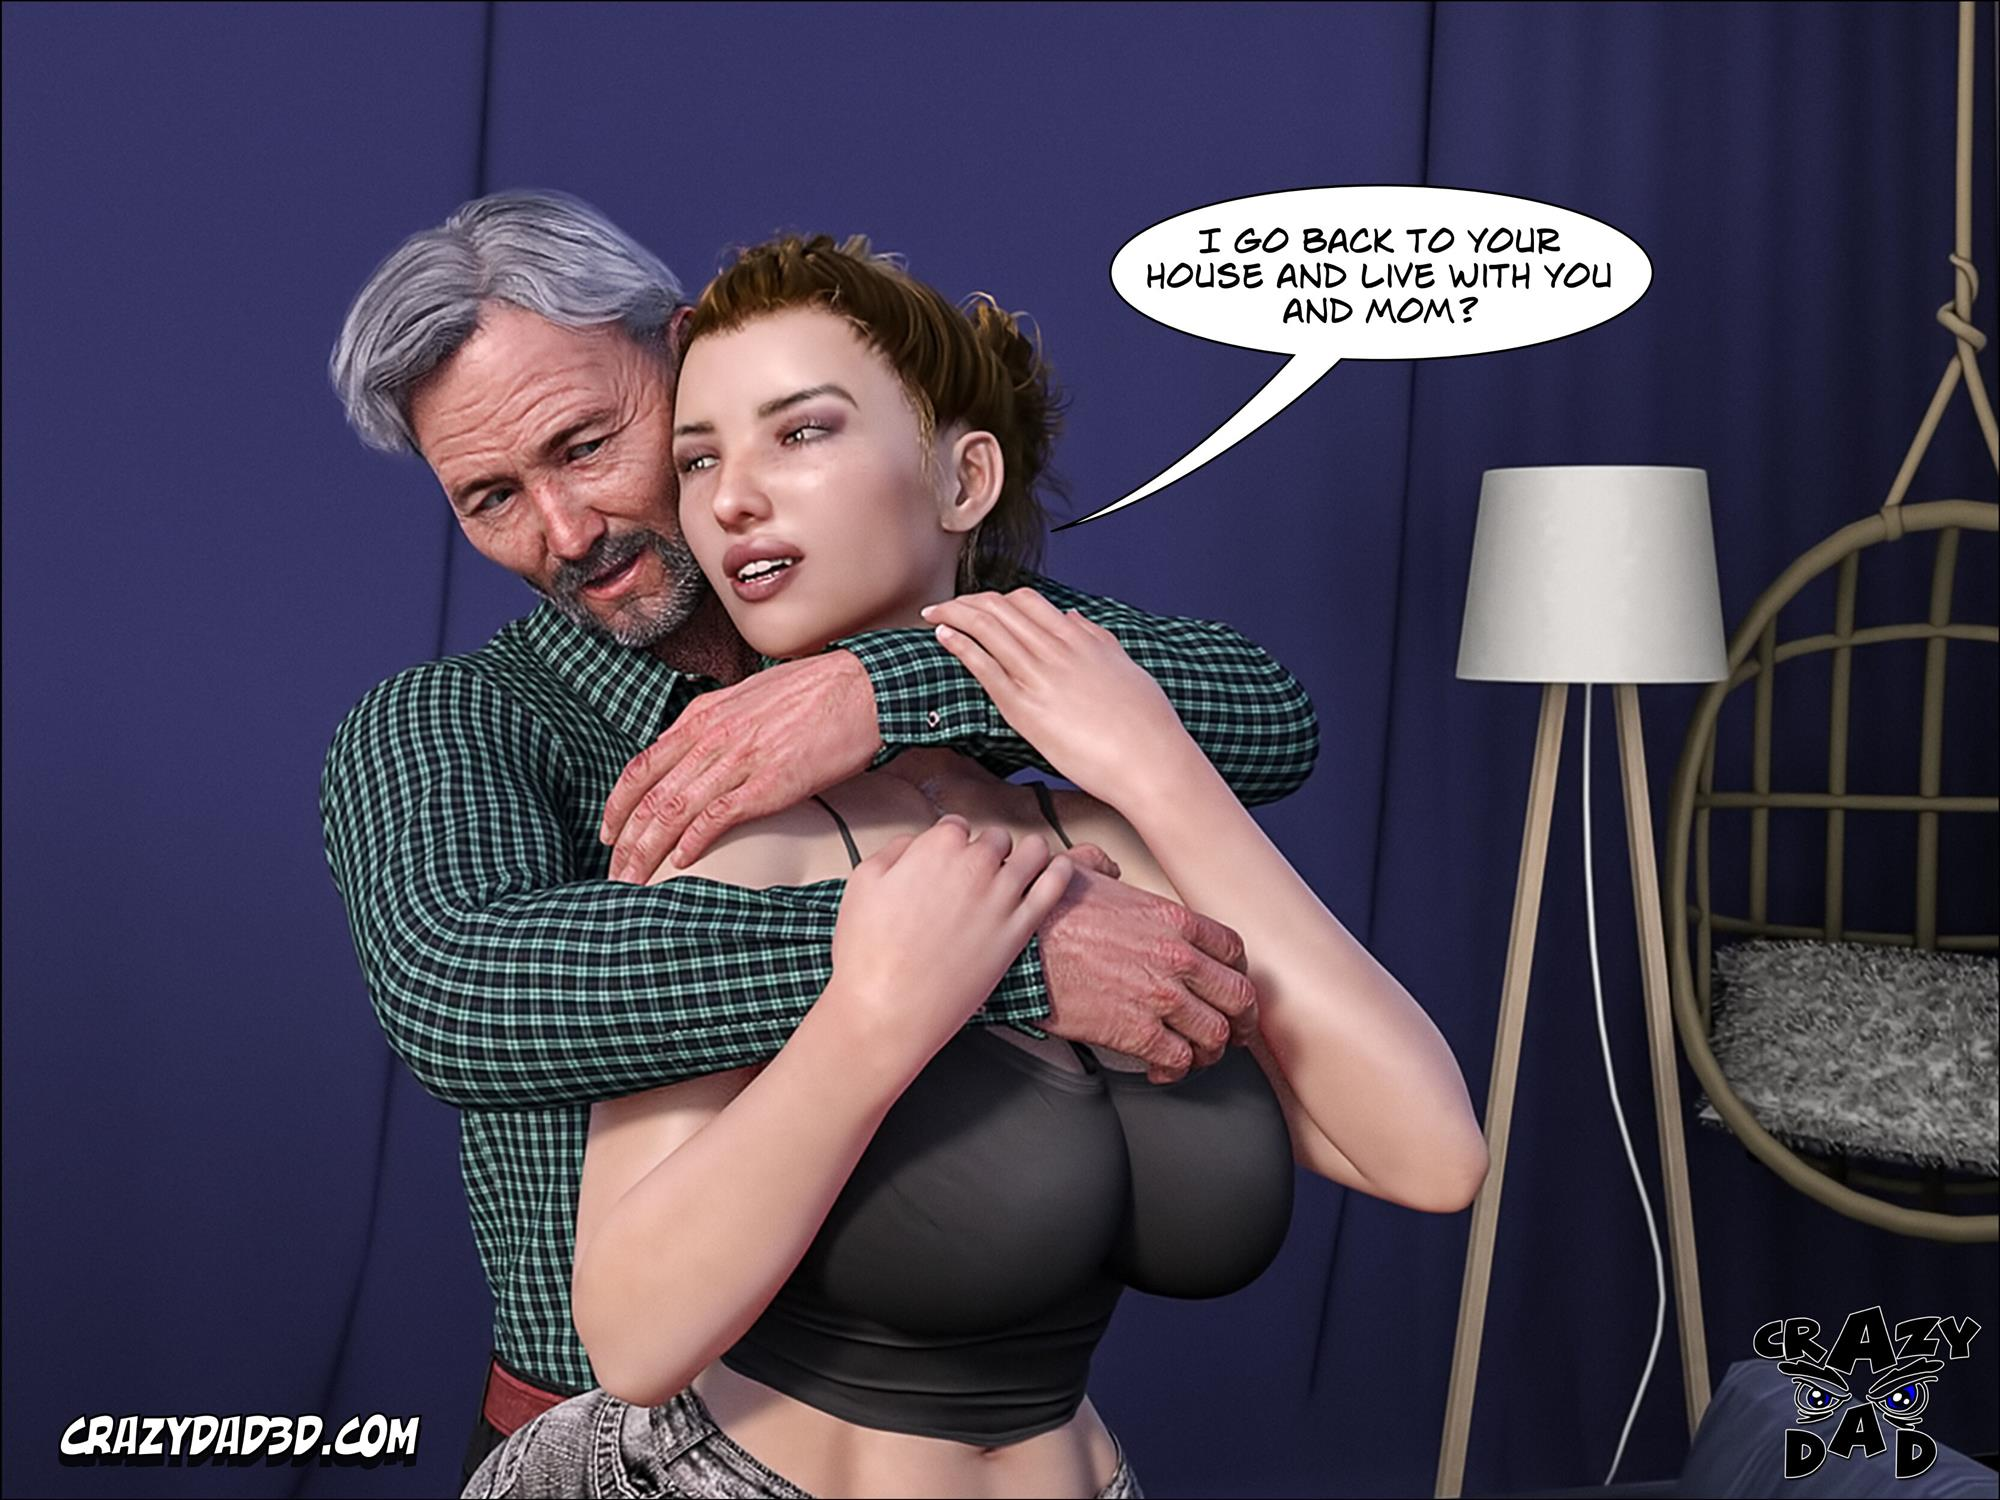 Father-in-Law at Home 10 [Crazy Dad 3D] - Foto 65